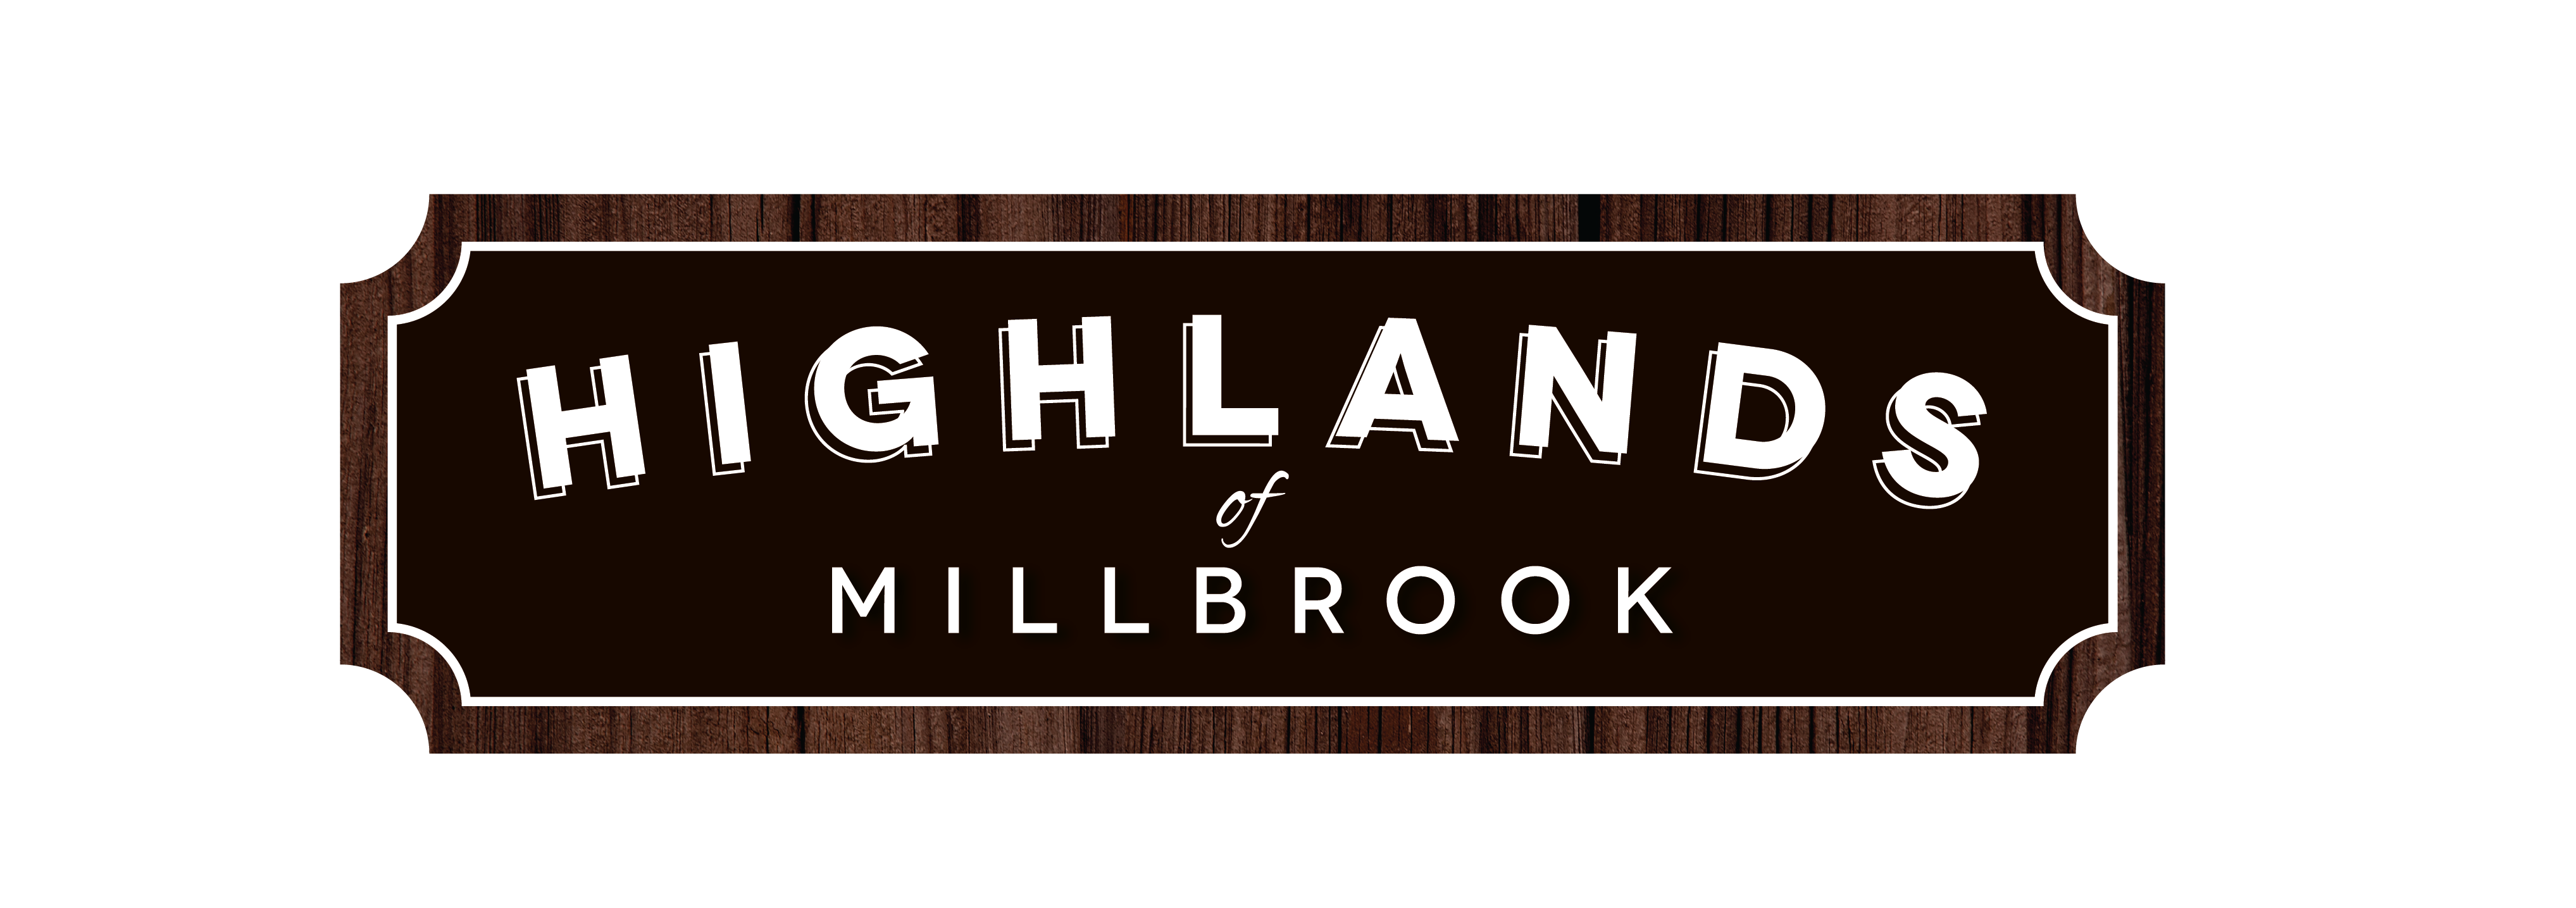 Highlands of Millbrook logo_woodBorder